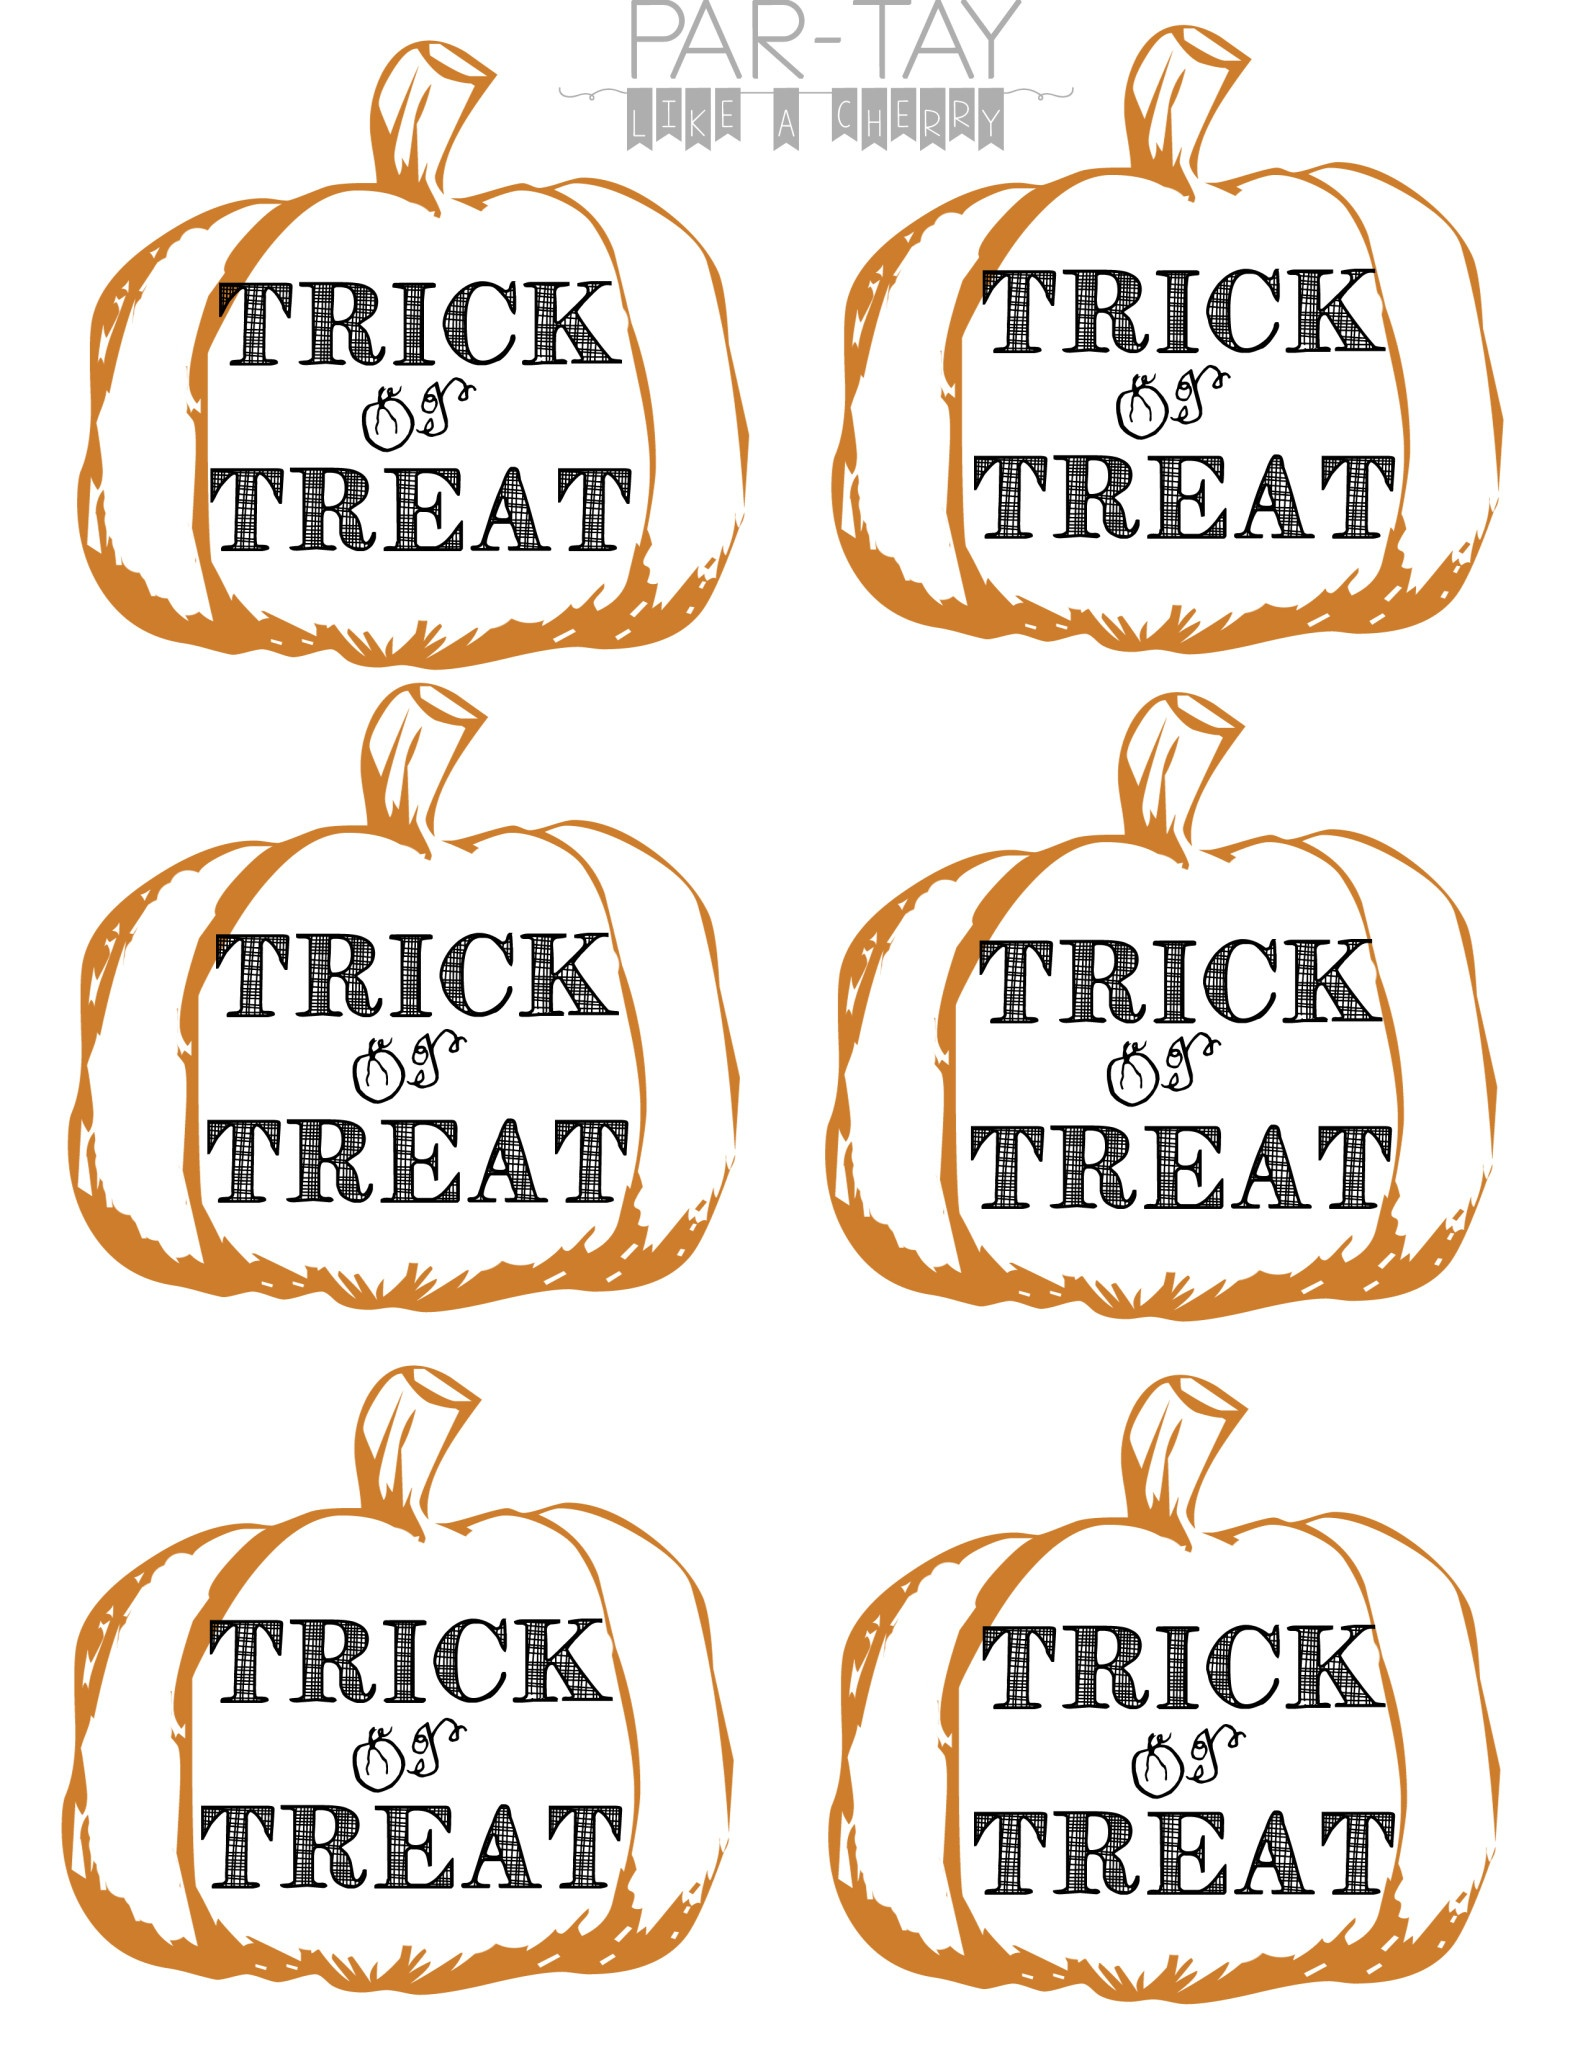 Pumpkin Tags Free Printable - Party Like A Cherry - Free Printable Pumpkin Gift Tags